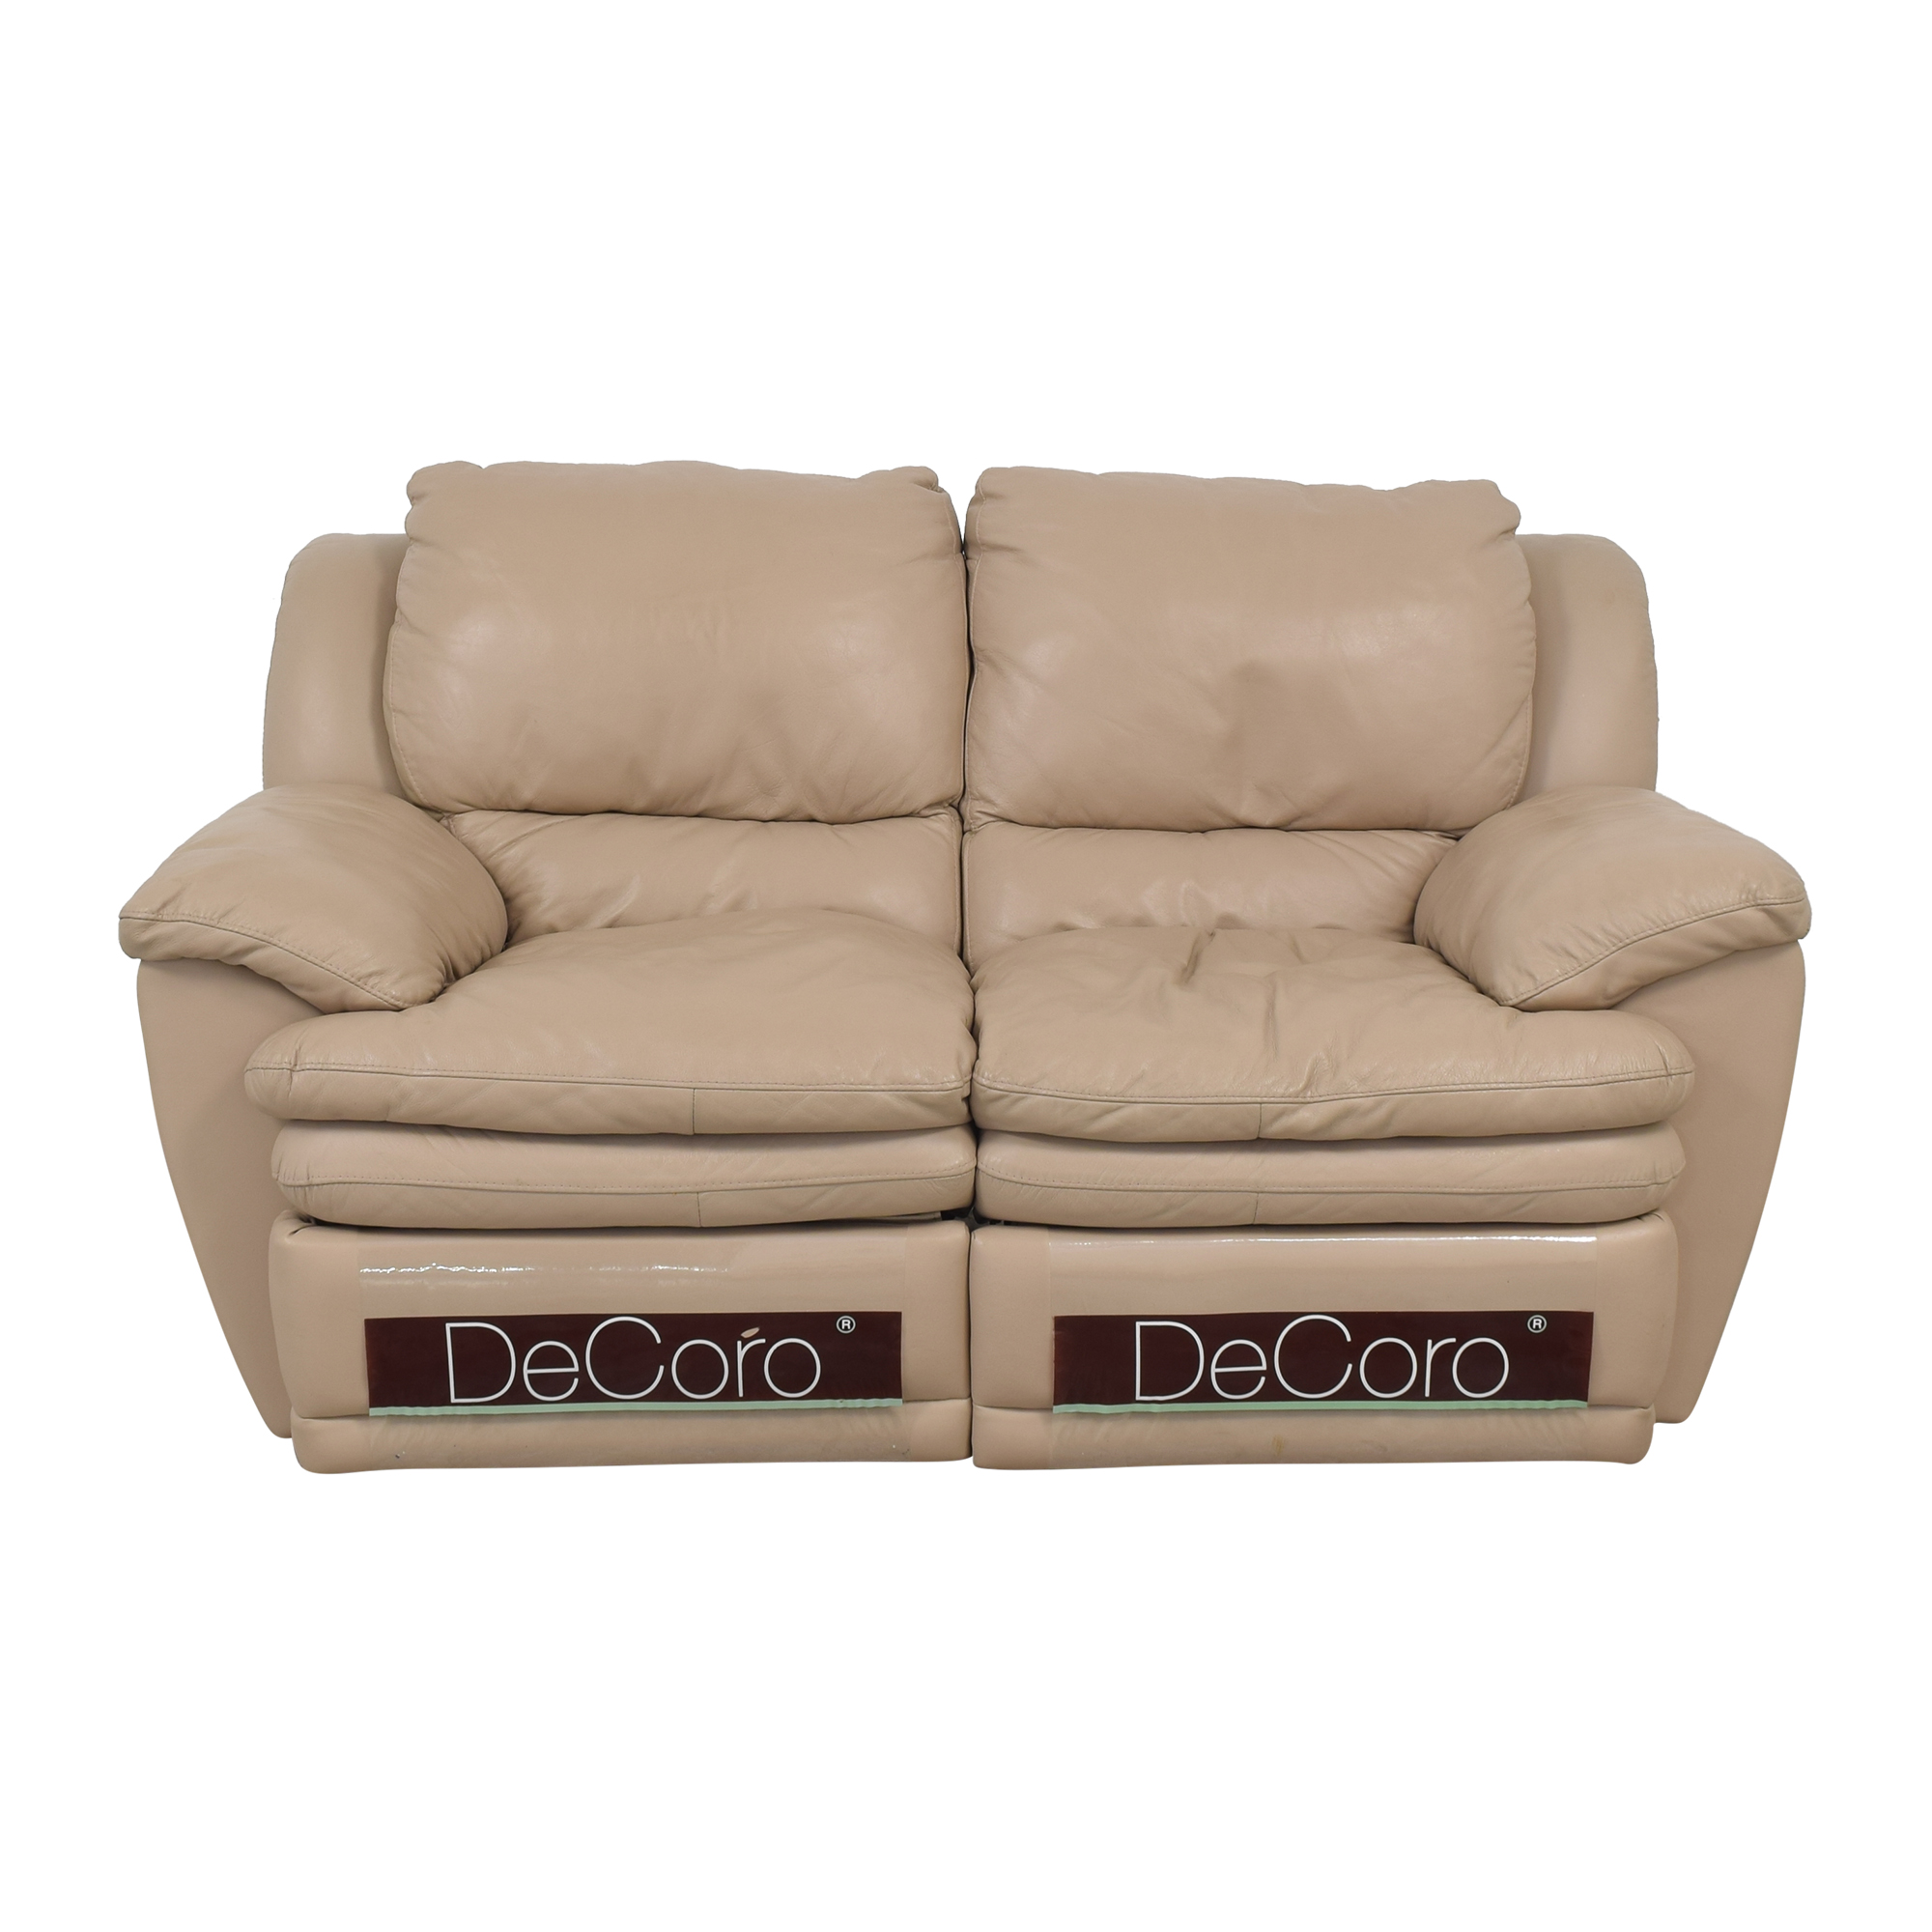 DeCoro DeCoro Reclining Loveseat Loveseats